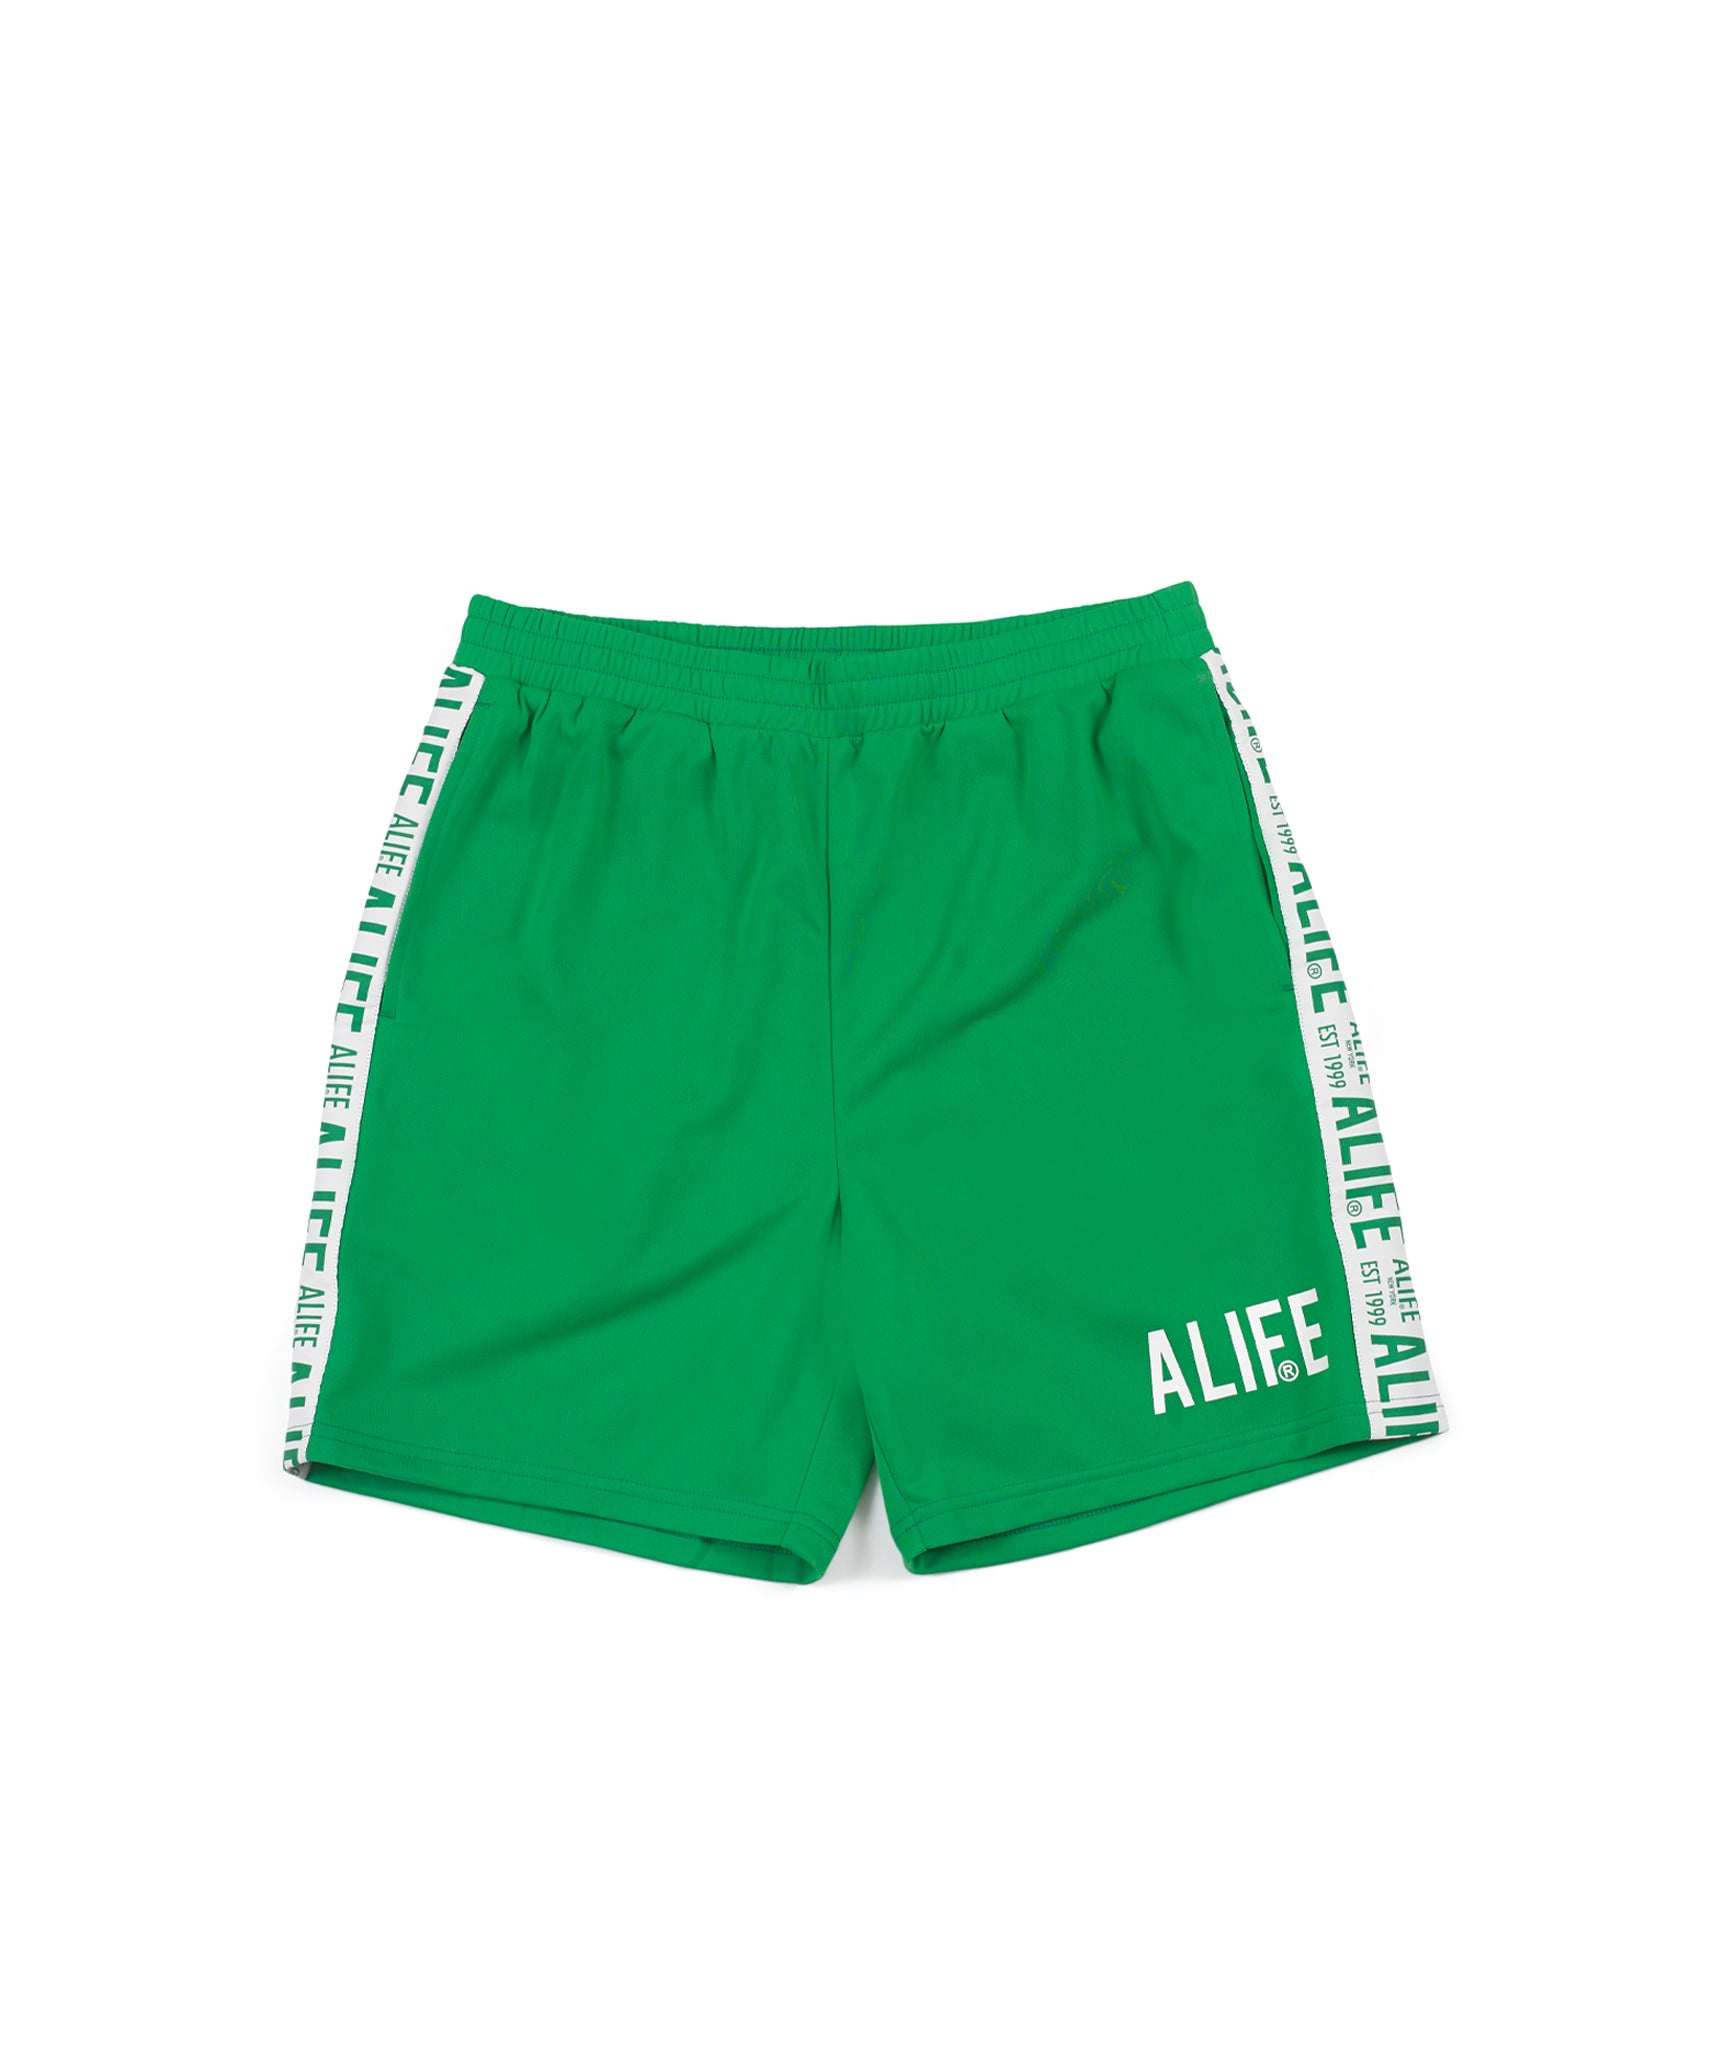 Alife Est 1999 Taped Track Short